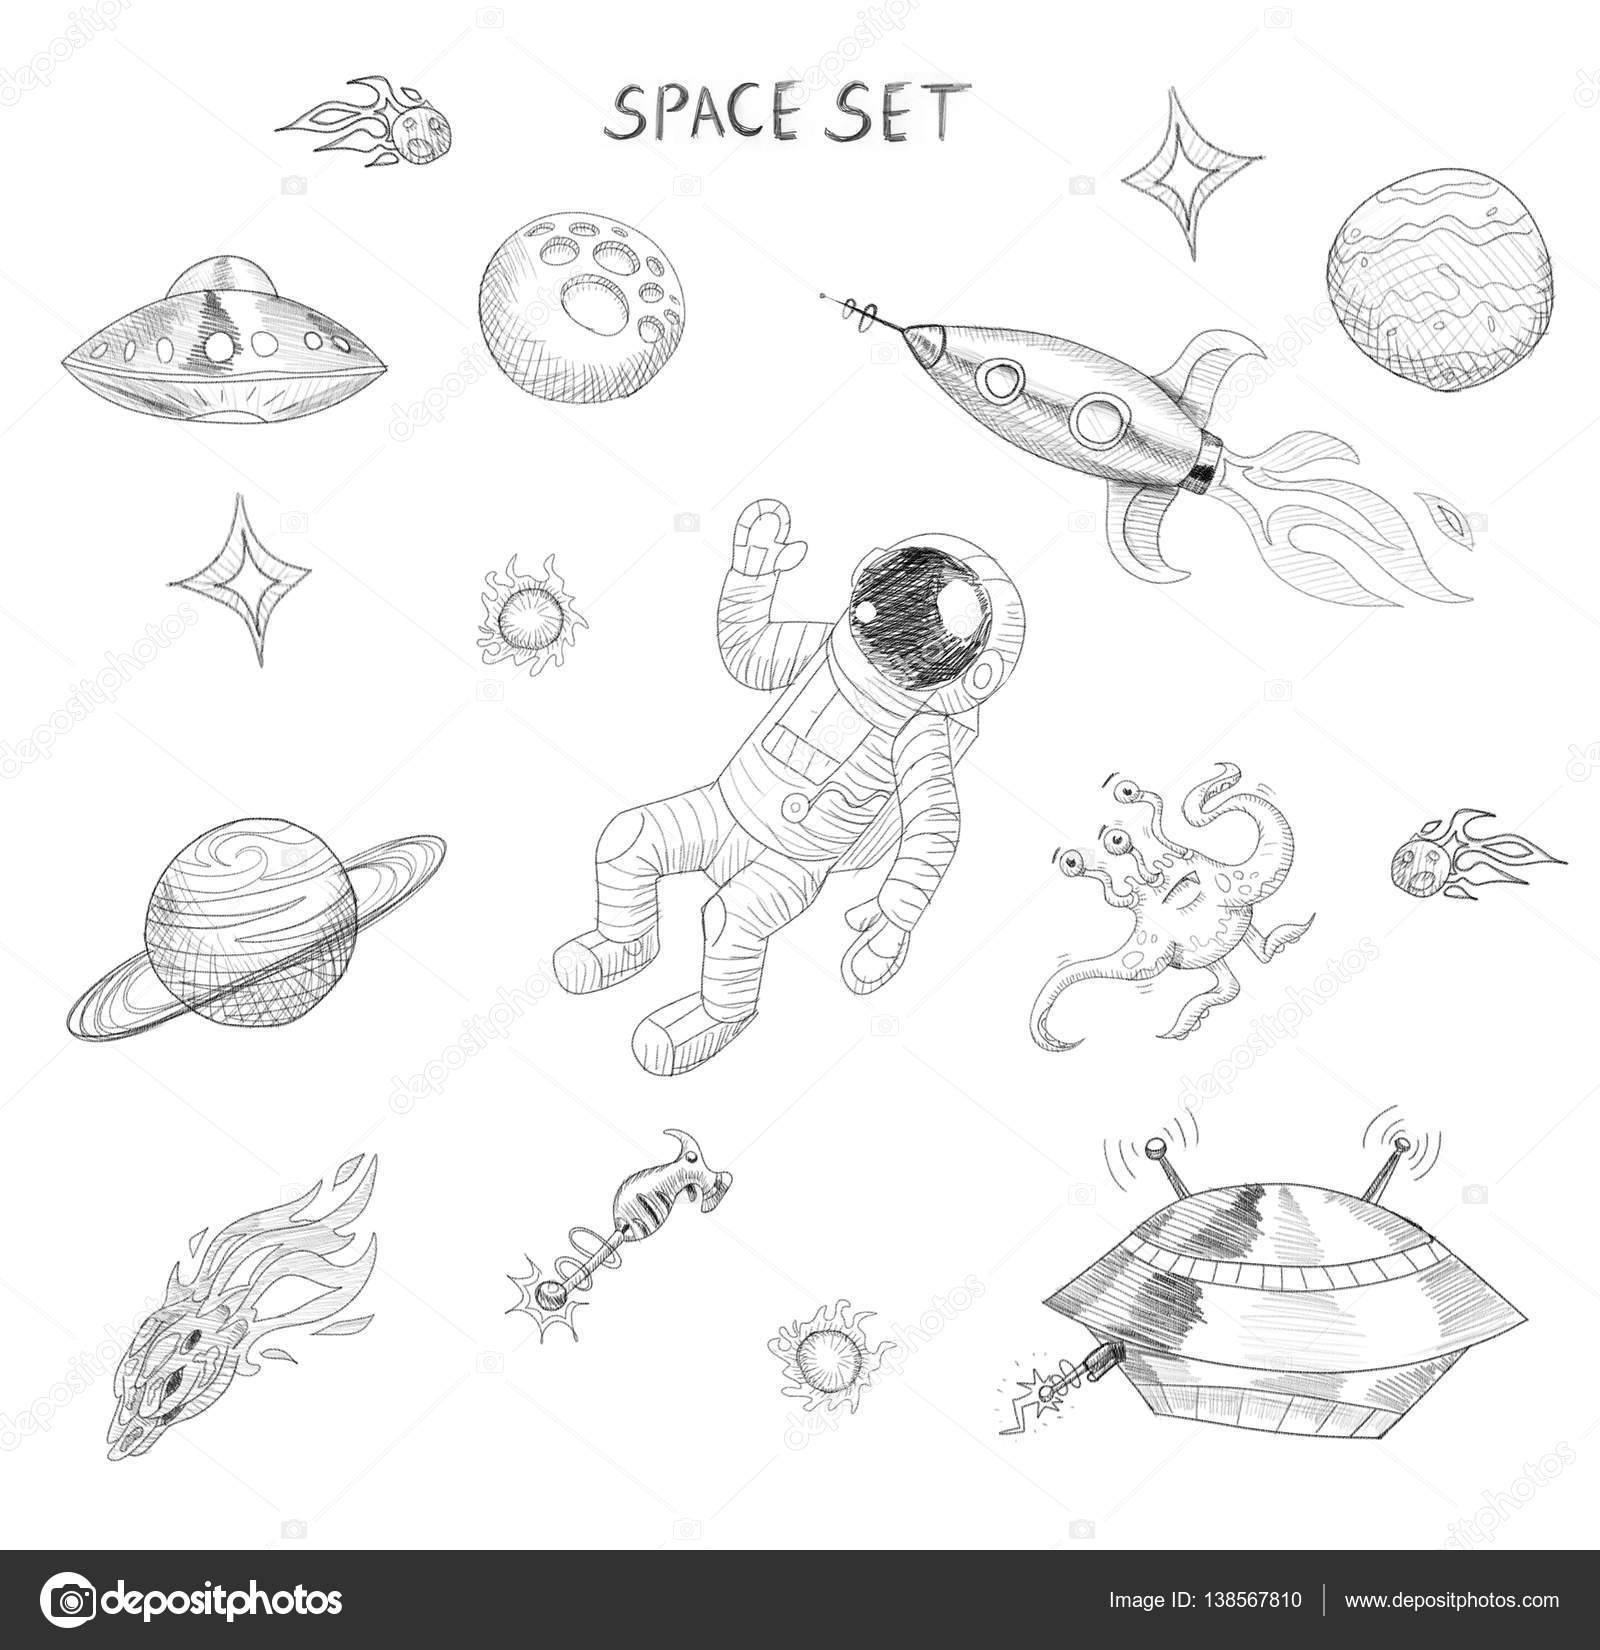 Drawing Of Space